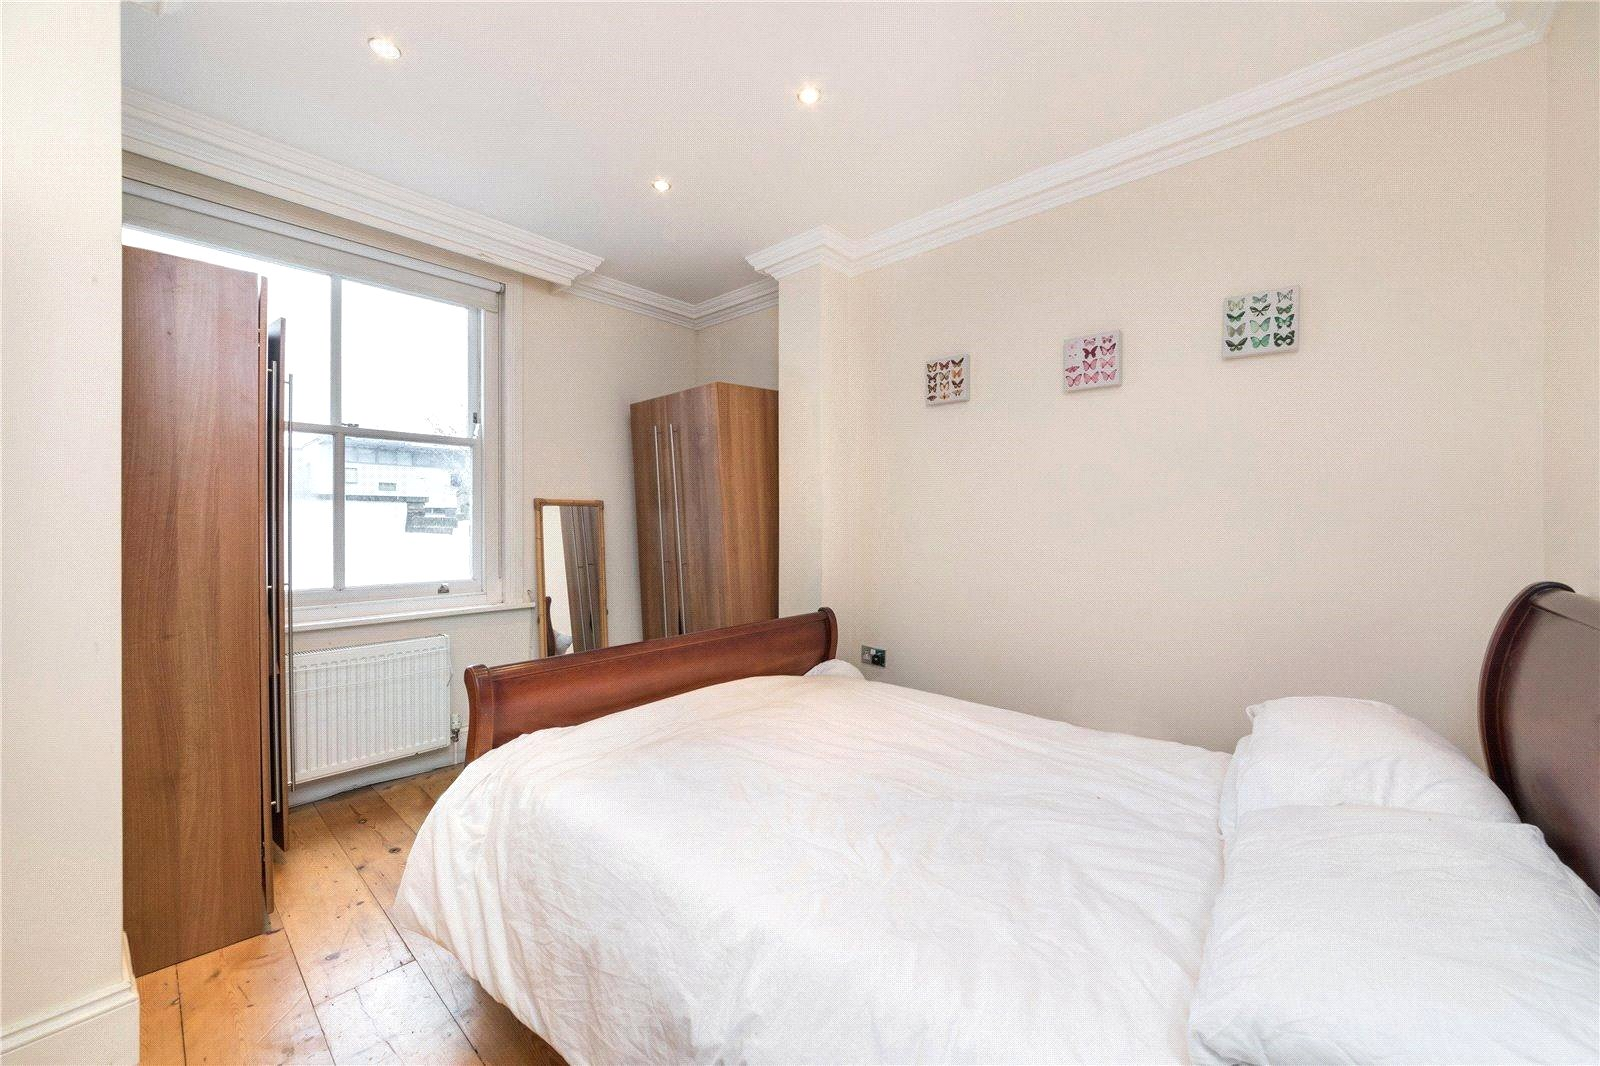 2 bed apartment to rent in Arsenal, N5 1LU  - Property Image 5